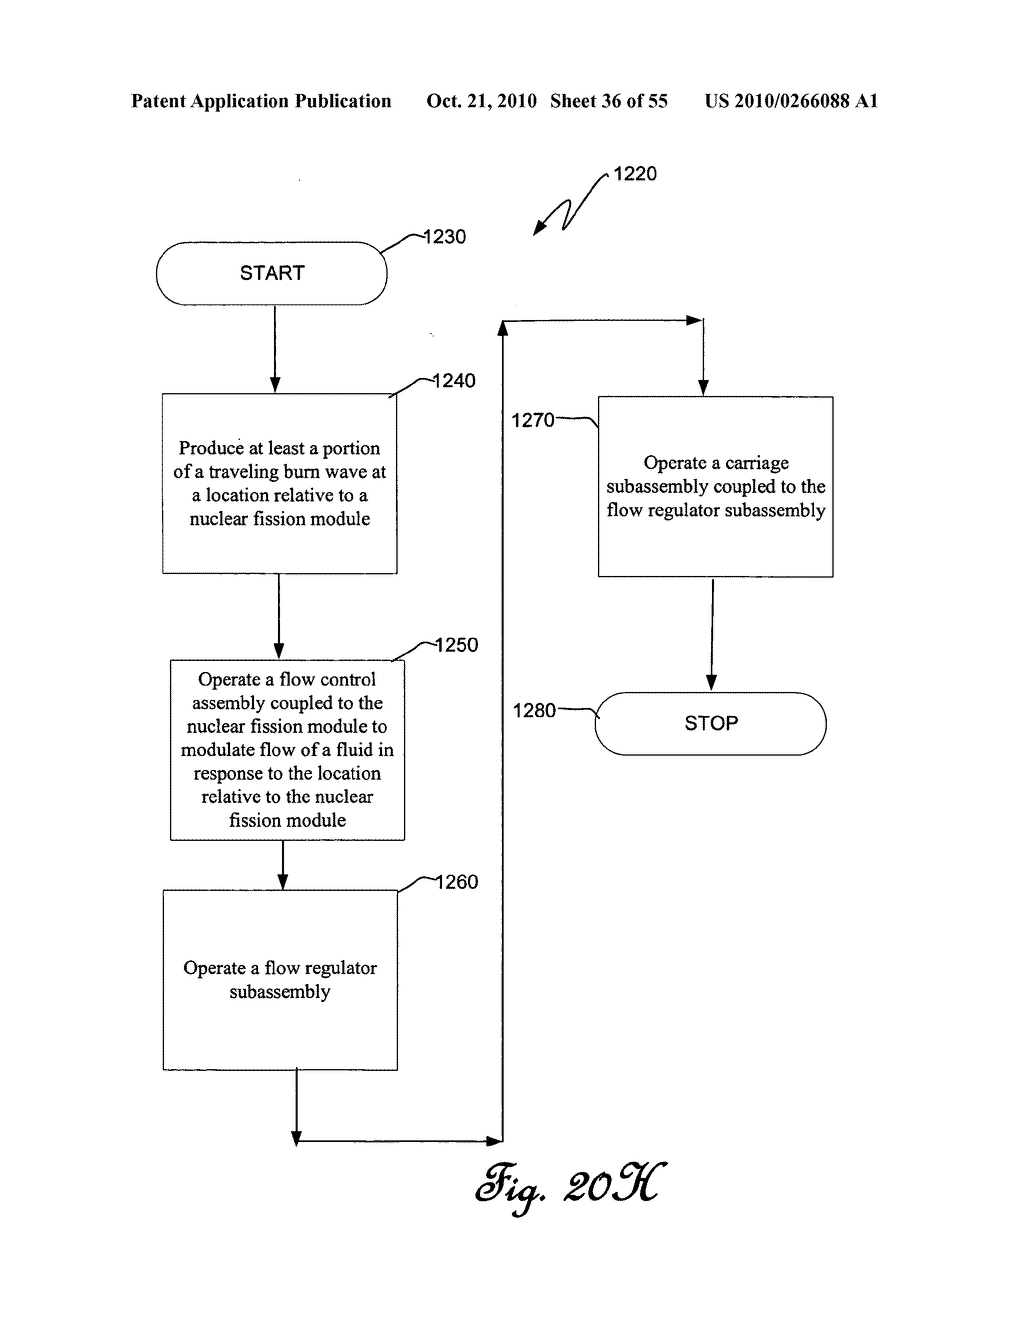 Nuclear fission reactor, flow control assembly, methods therefor and a flow control assembly system - diagram, schematic, and image 37